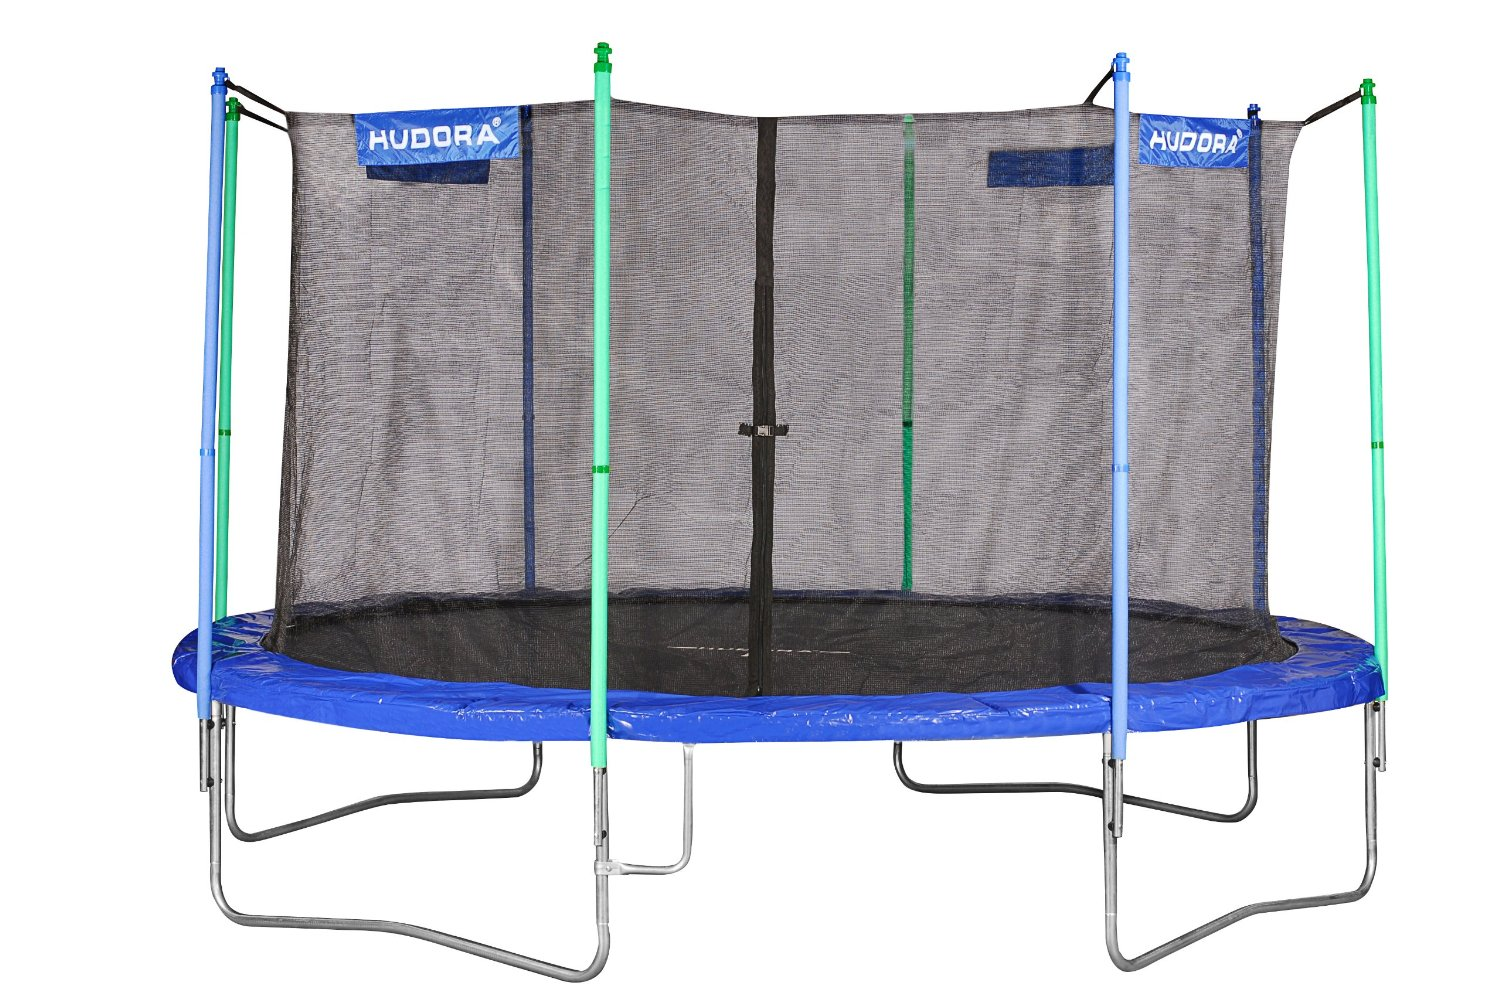 hudora 305 cm trampolin test trampolin test recherche vergleich 2018. Black Bedroom Furniture Sets. Home Design Ideas